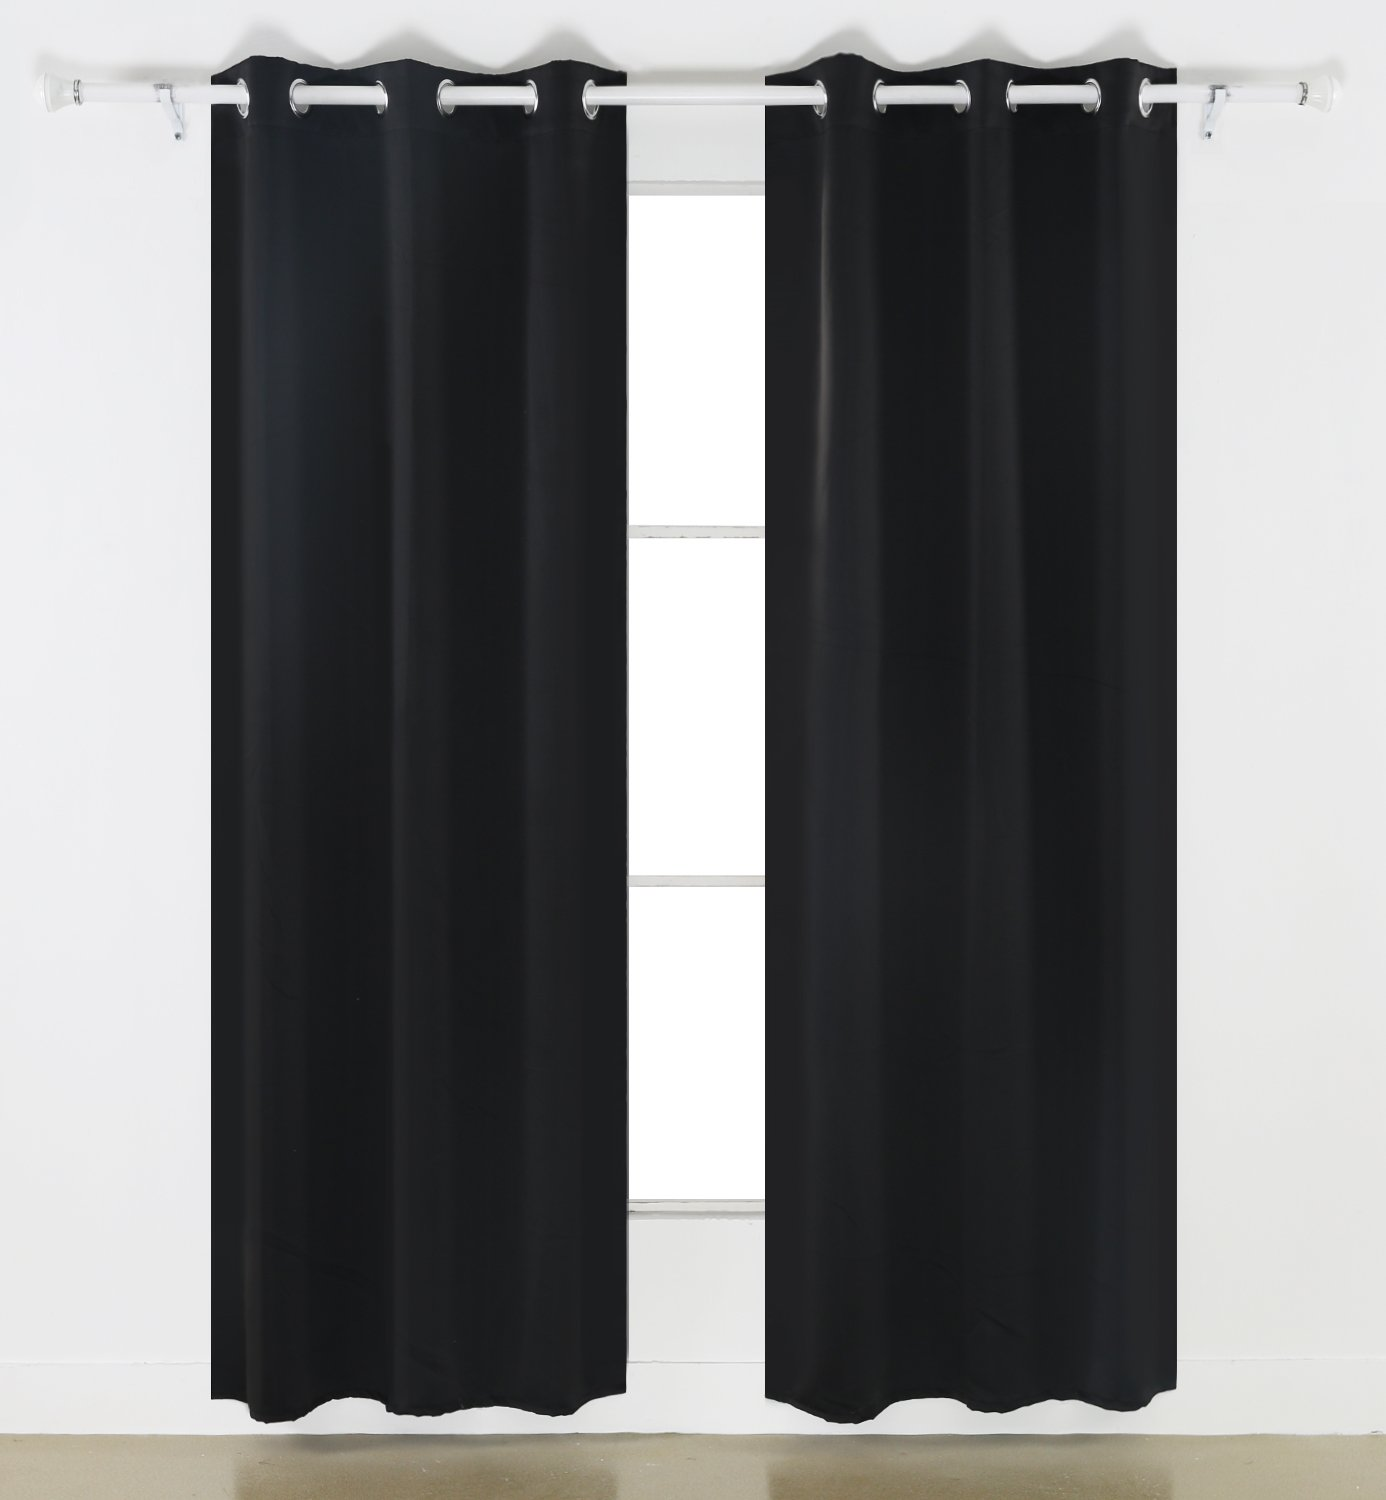 Blackout curtains for bedroom - Amazon Com Deconovo Room Darkening Thermal Insulated Blackout Grommet Window Curtain For Bedroom Black 42x84 Inch 1 Panel Home Kitchen